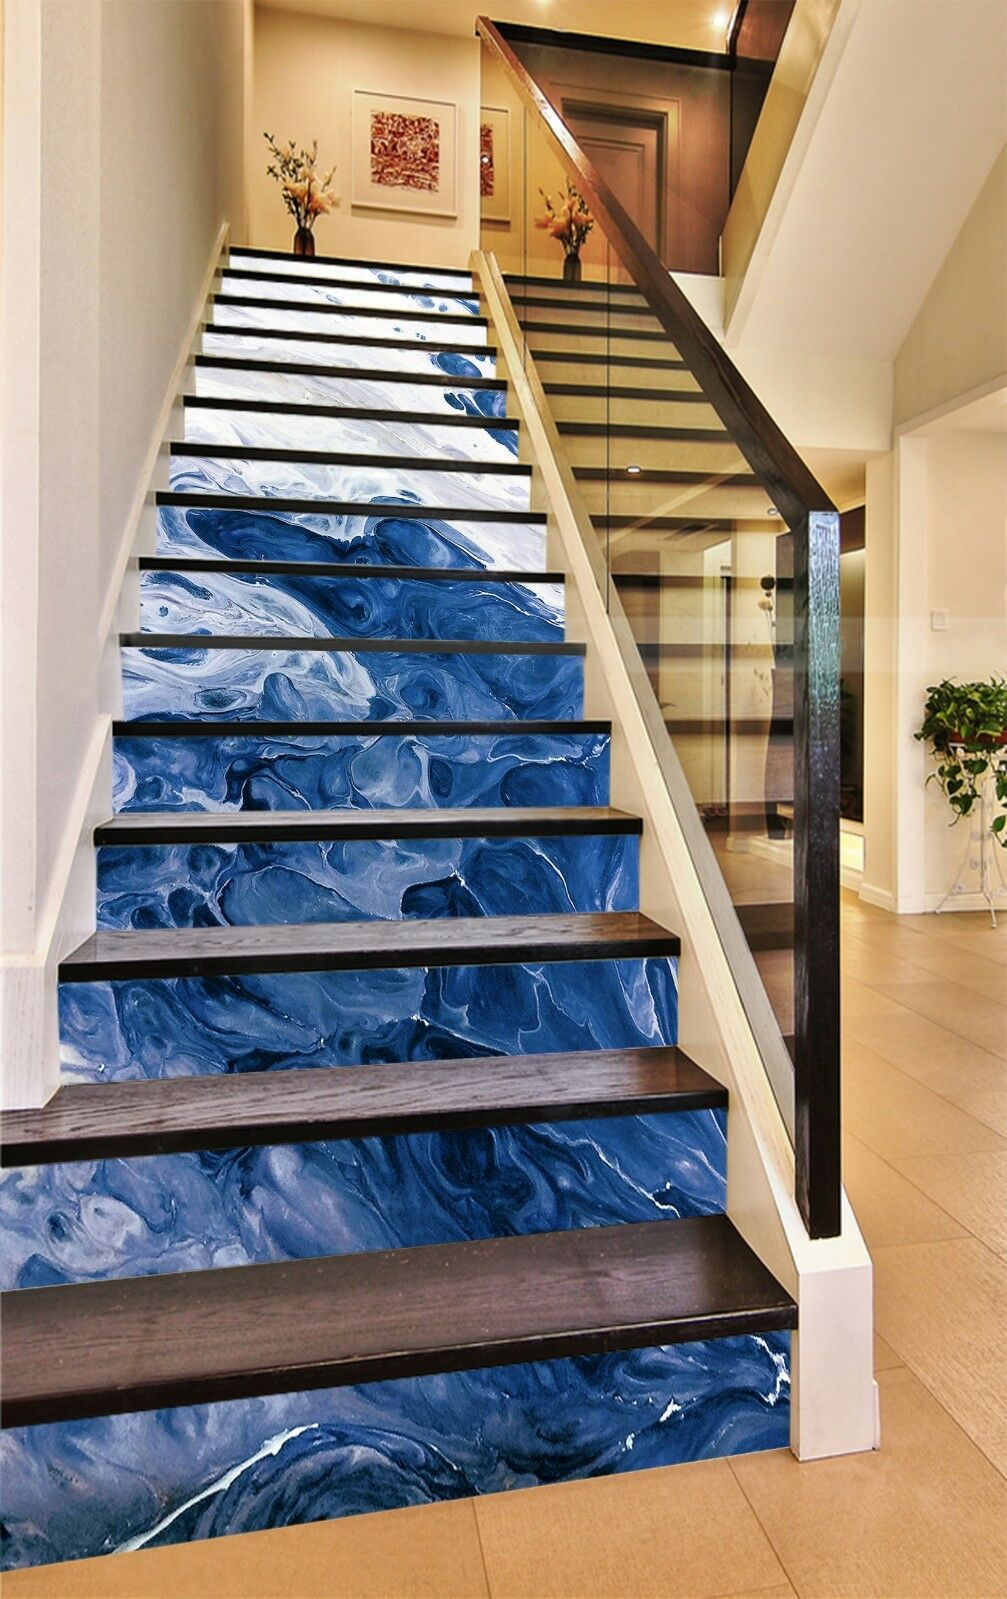 3D bluee Pigment 7 Tile Marble Stair Risers Photo Mural Vinyl Decal Wallpaper